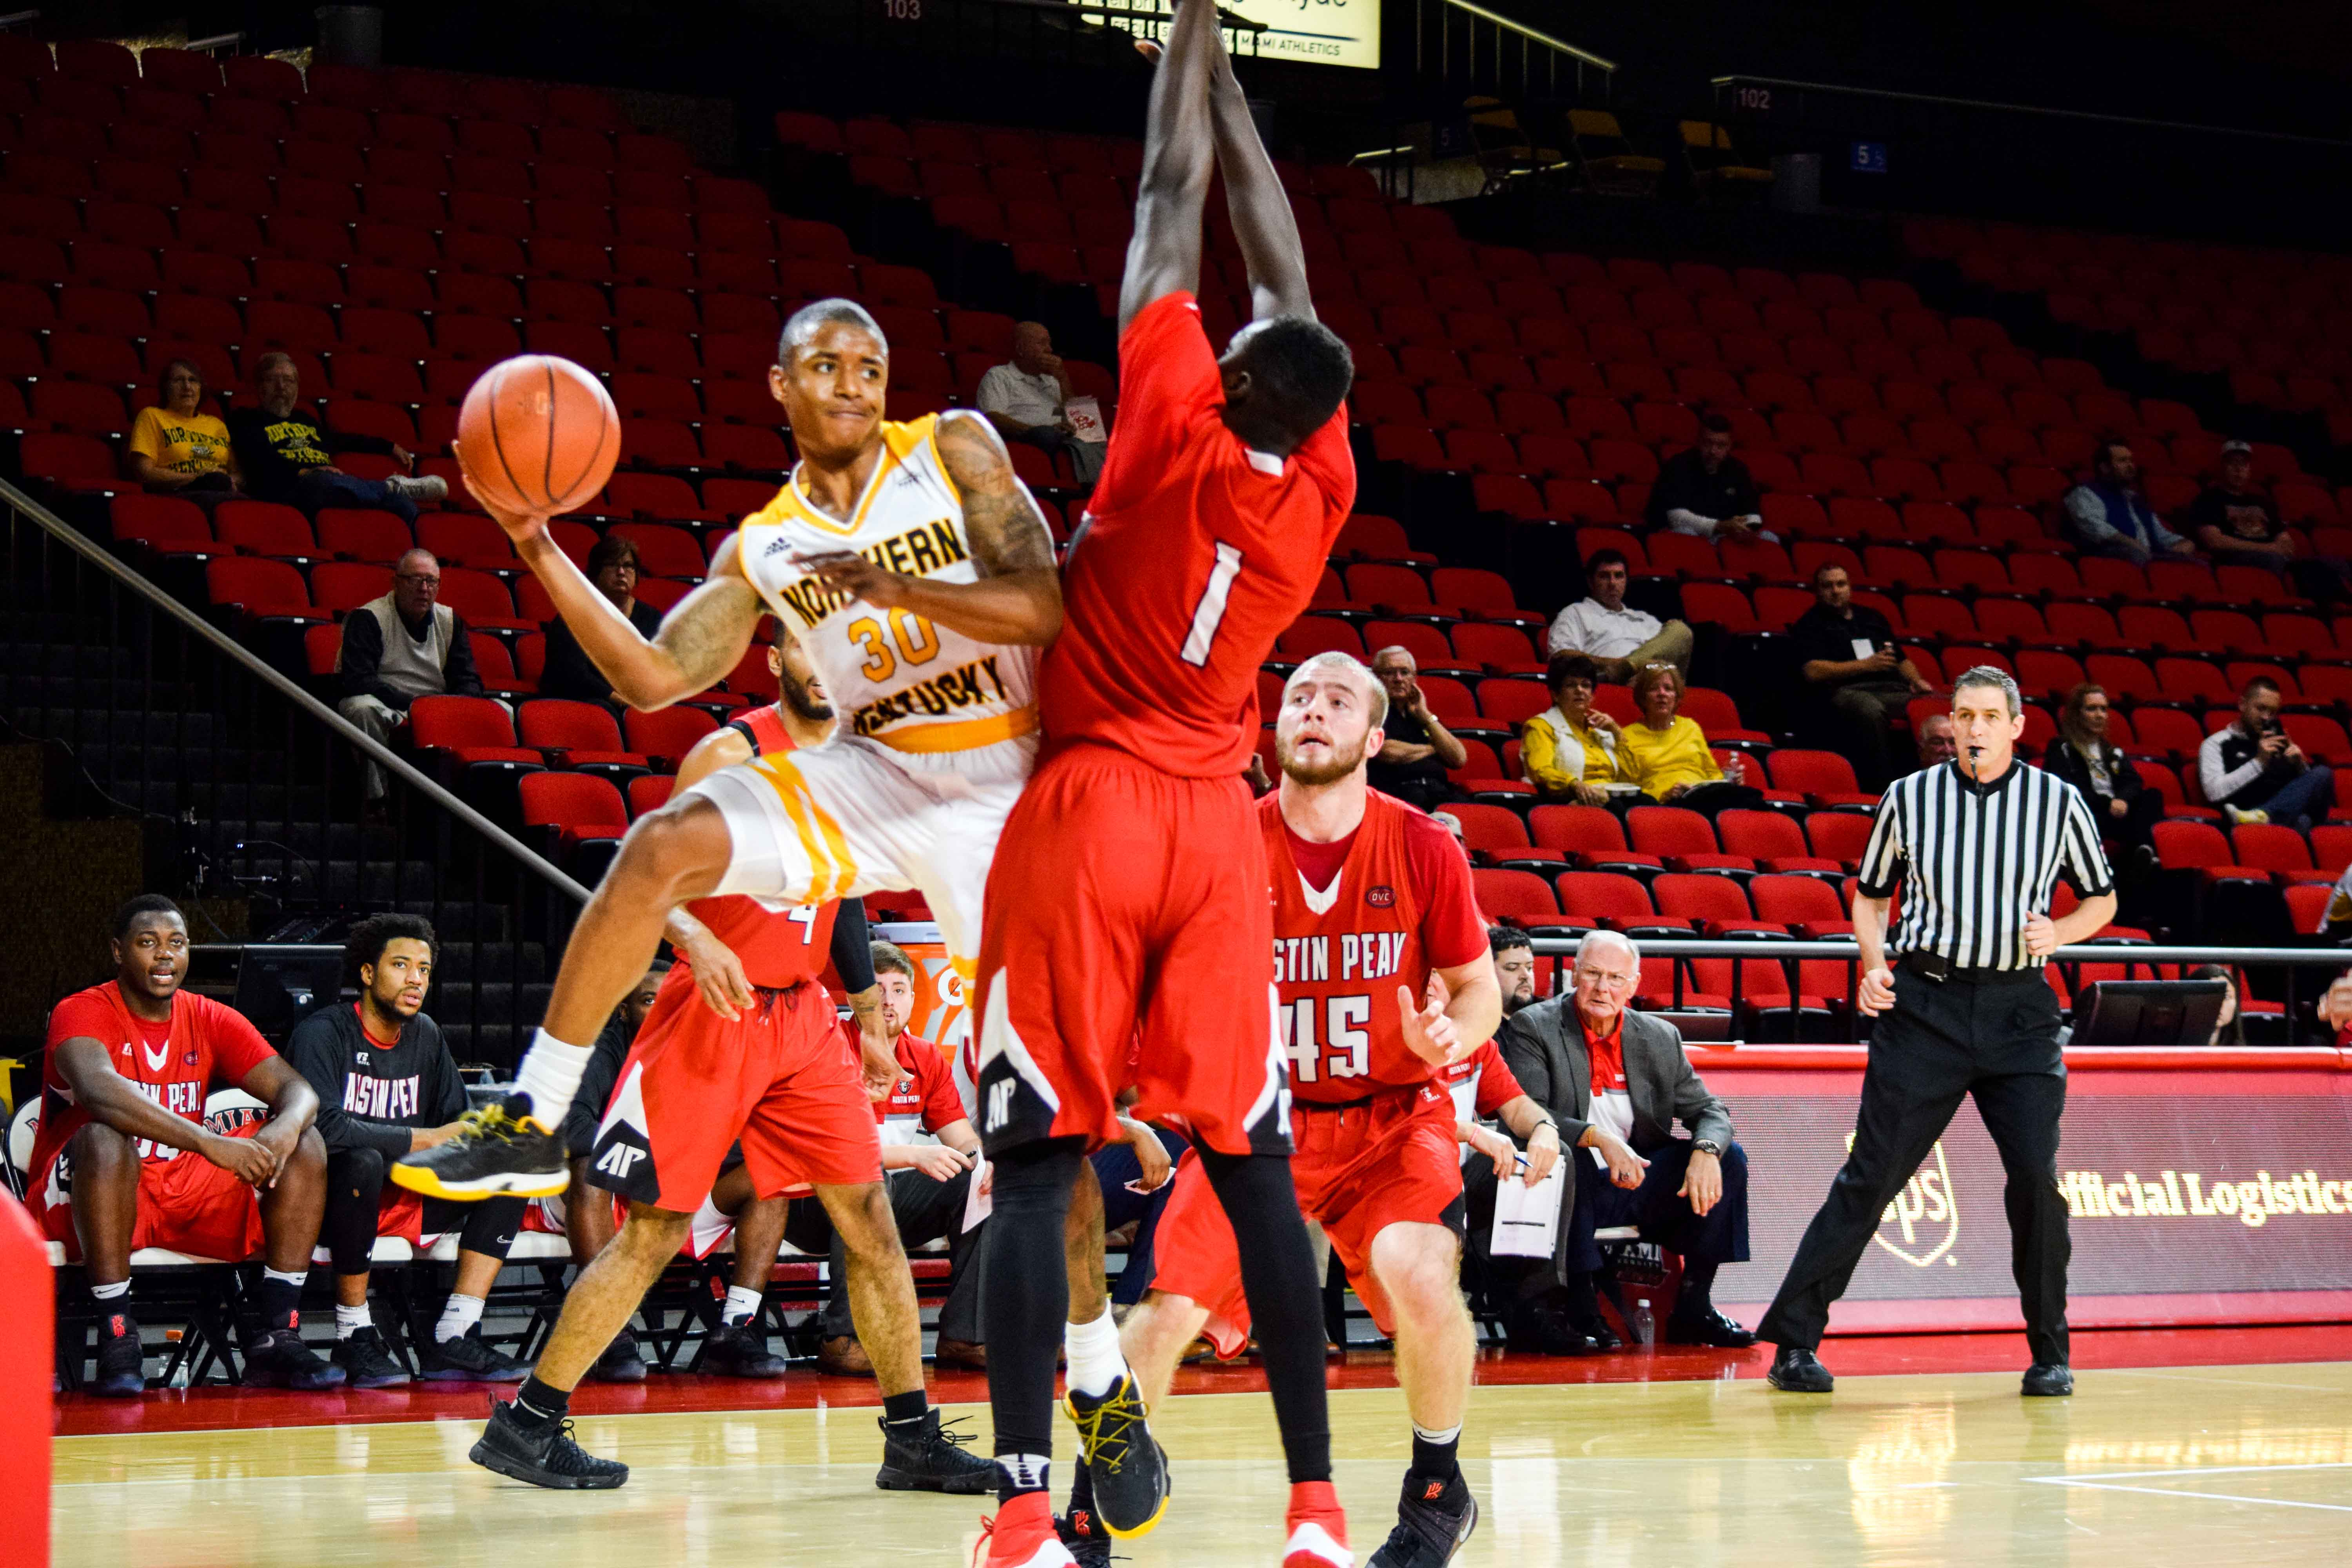 NKU's Lavone Holland II (30) throws a pass during Friday's game against Austin Peay at Miami University.